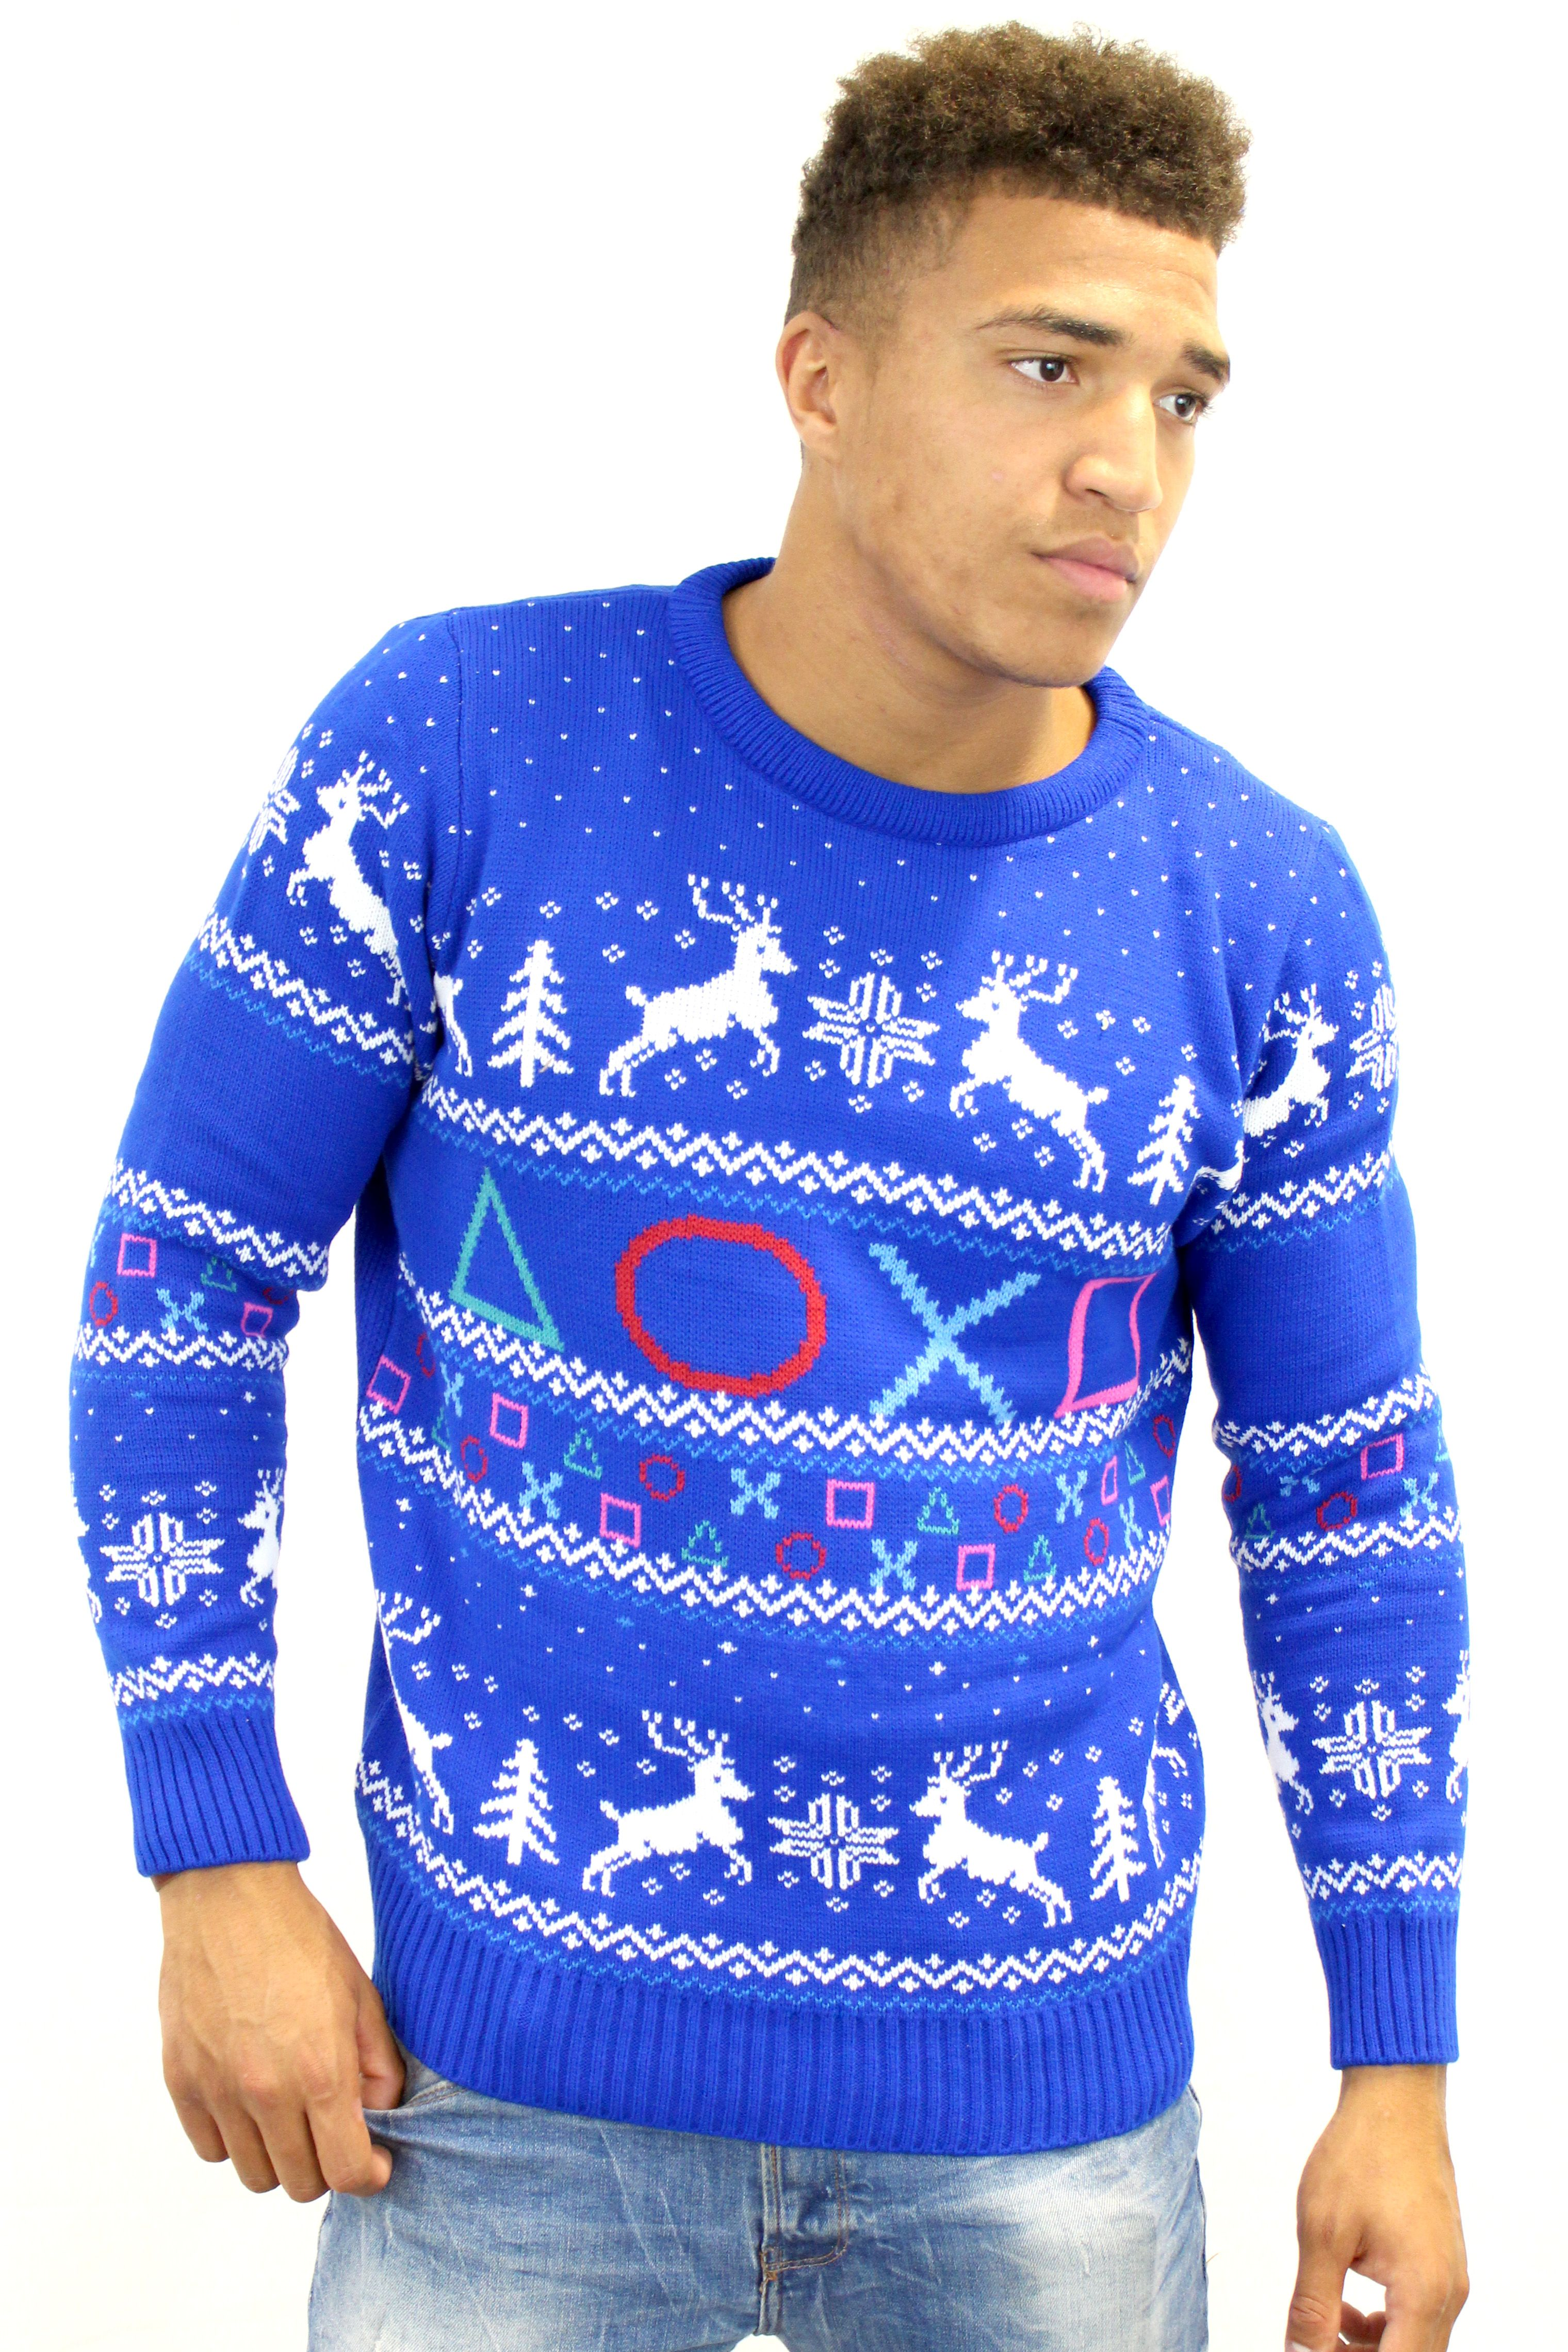 Official PlayStation Symbols Christmas Jumper | Jumpers | Yellow ...